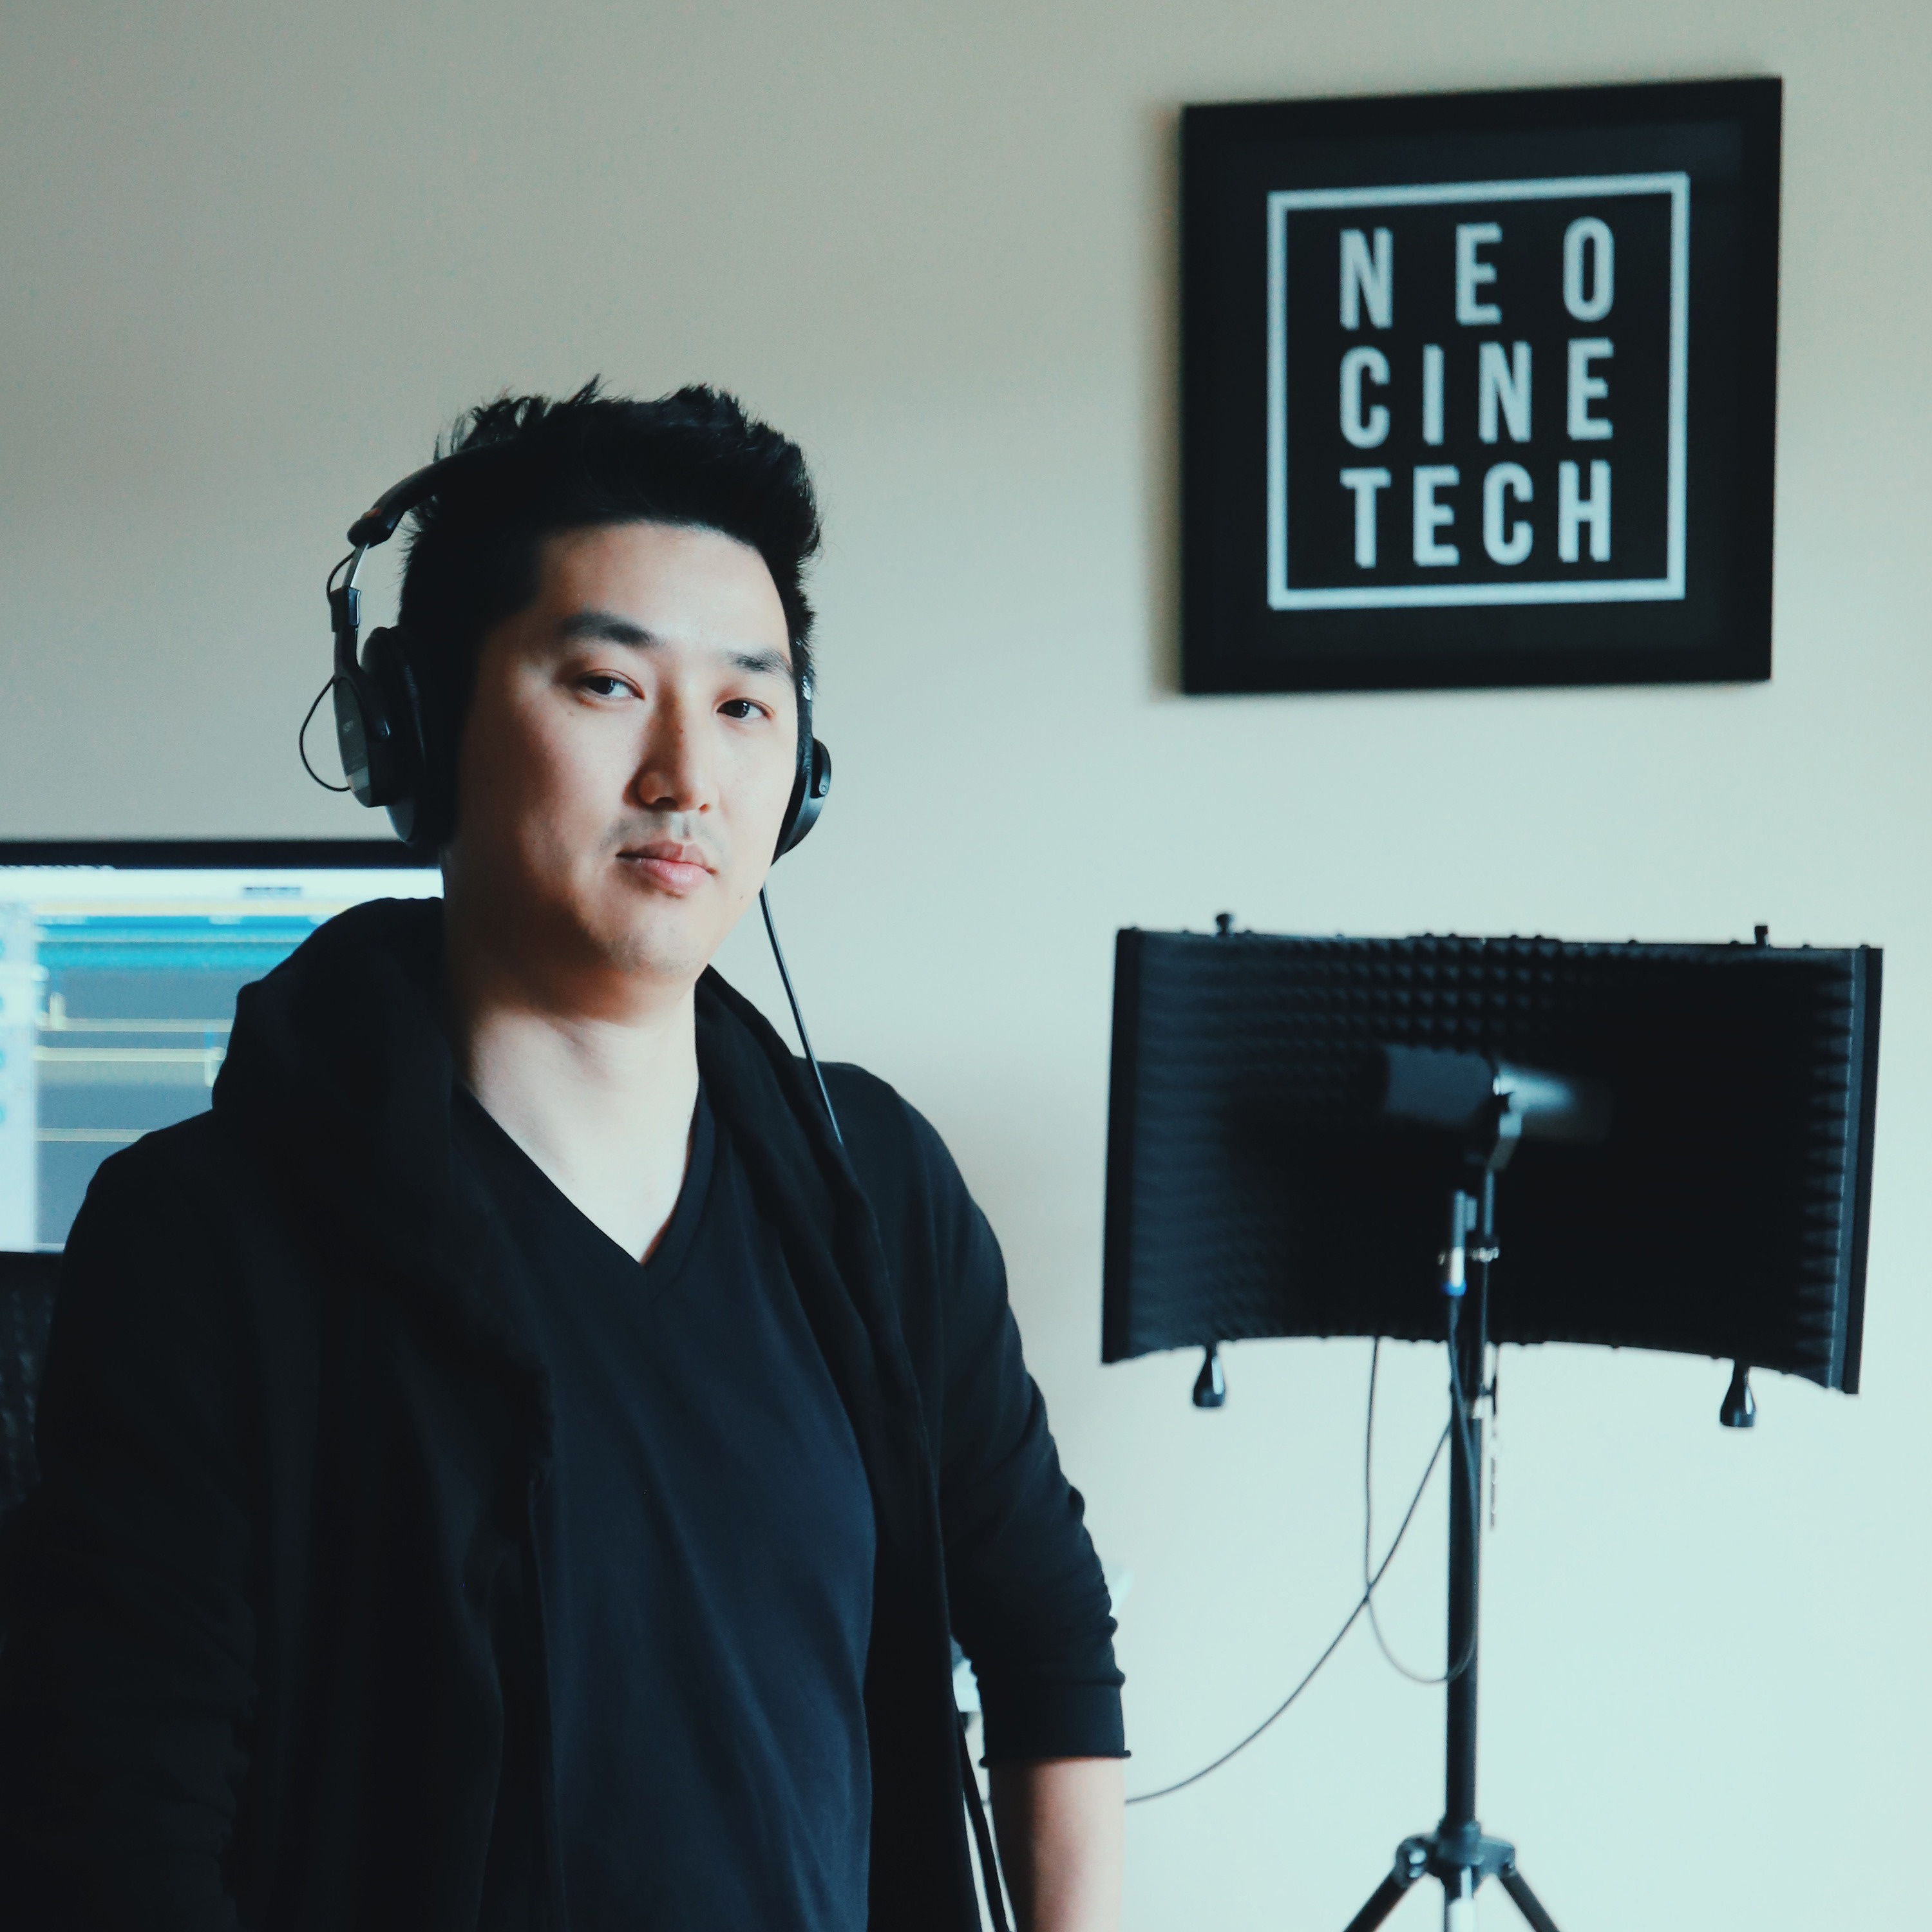 What is Neo Cine Tech?